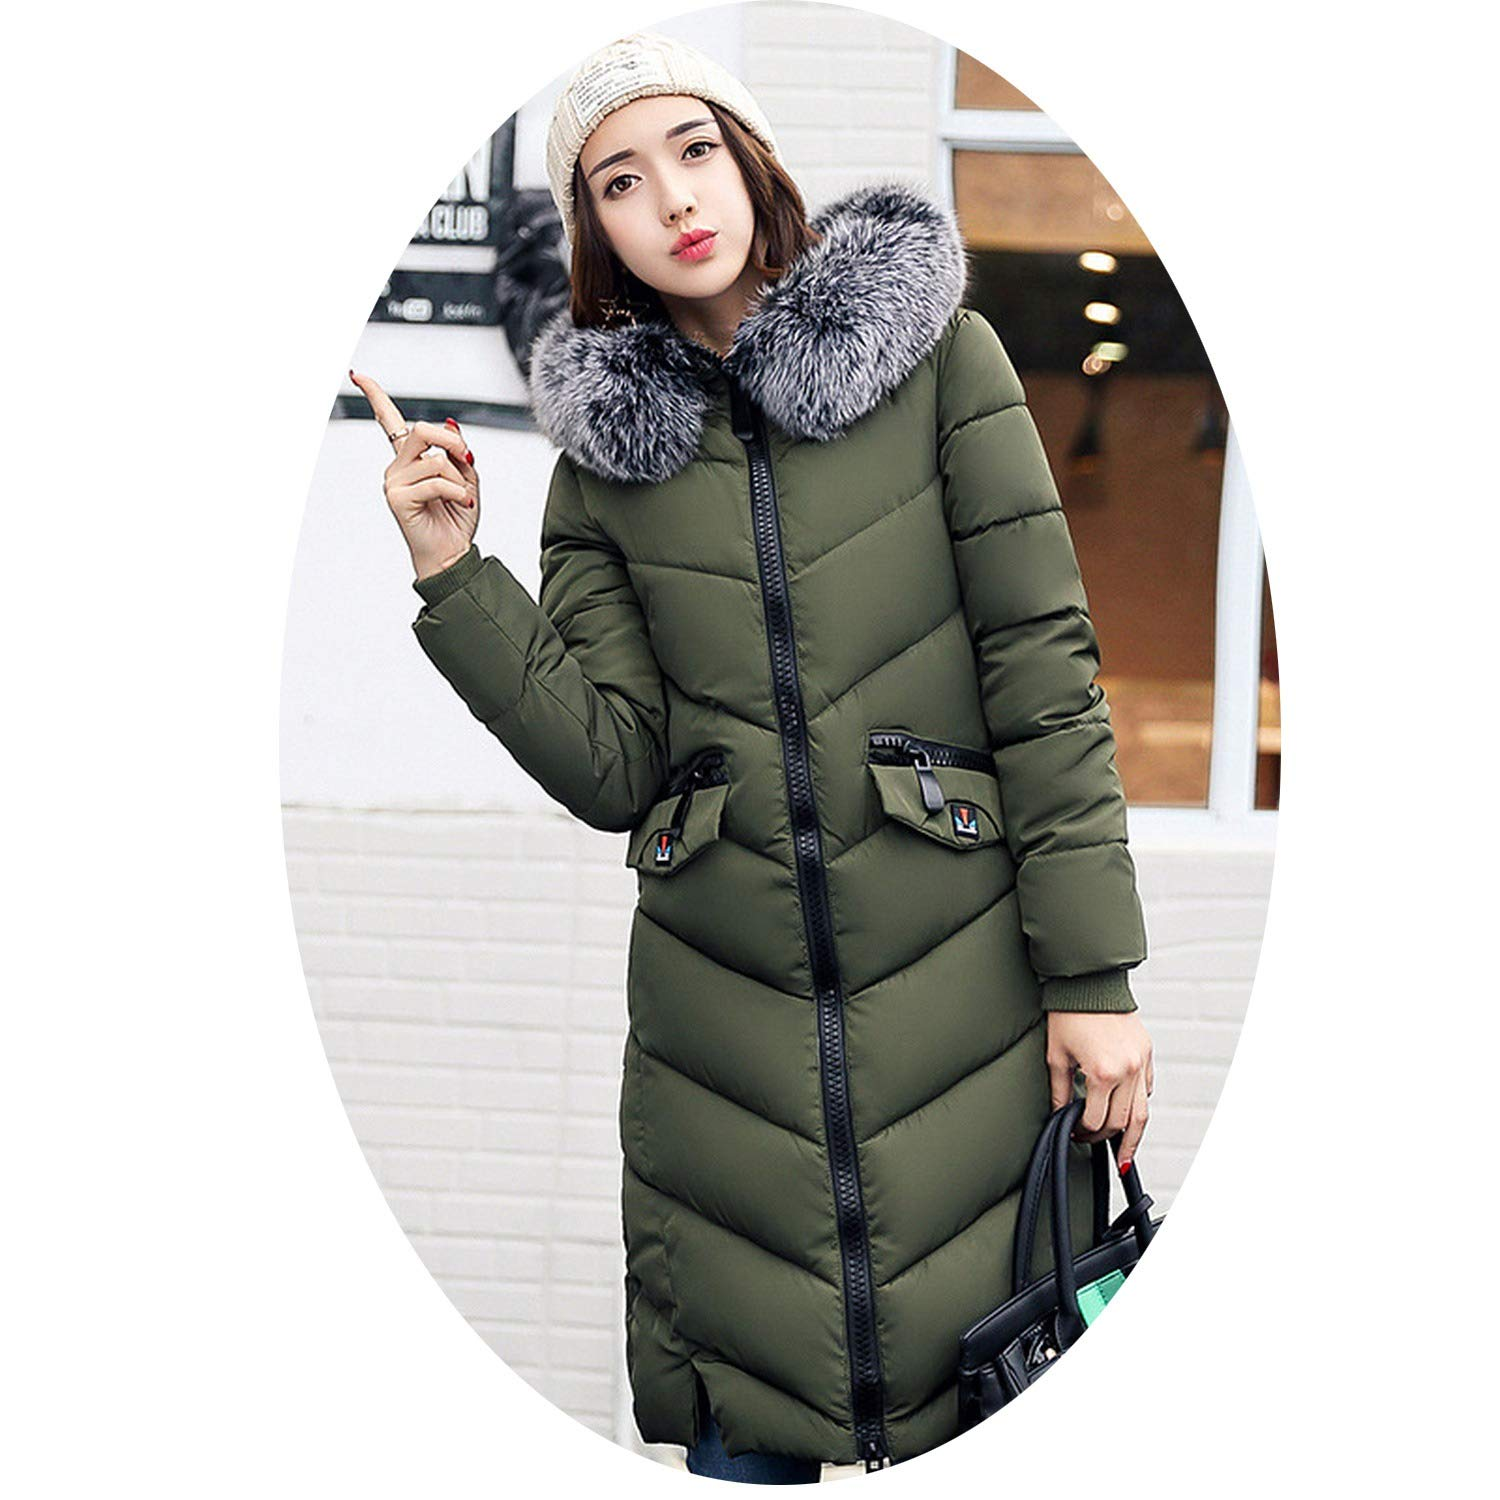 786bc85dea0 Amazon.com: Gooding life Thick Winter Warm Coat Female Winter Jacket Women  Fur Collar Wadded Women Hooded Coat Down Parka Long Outerwear: Clothing